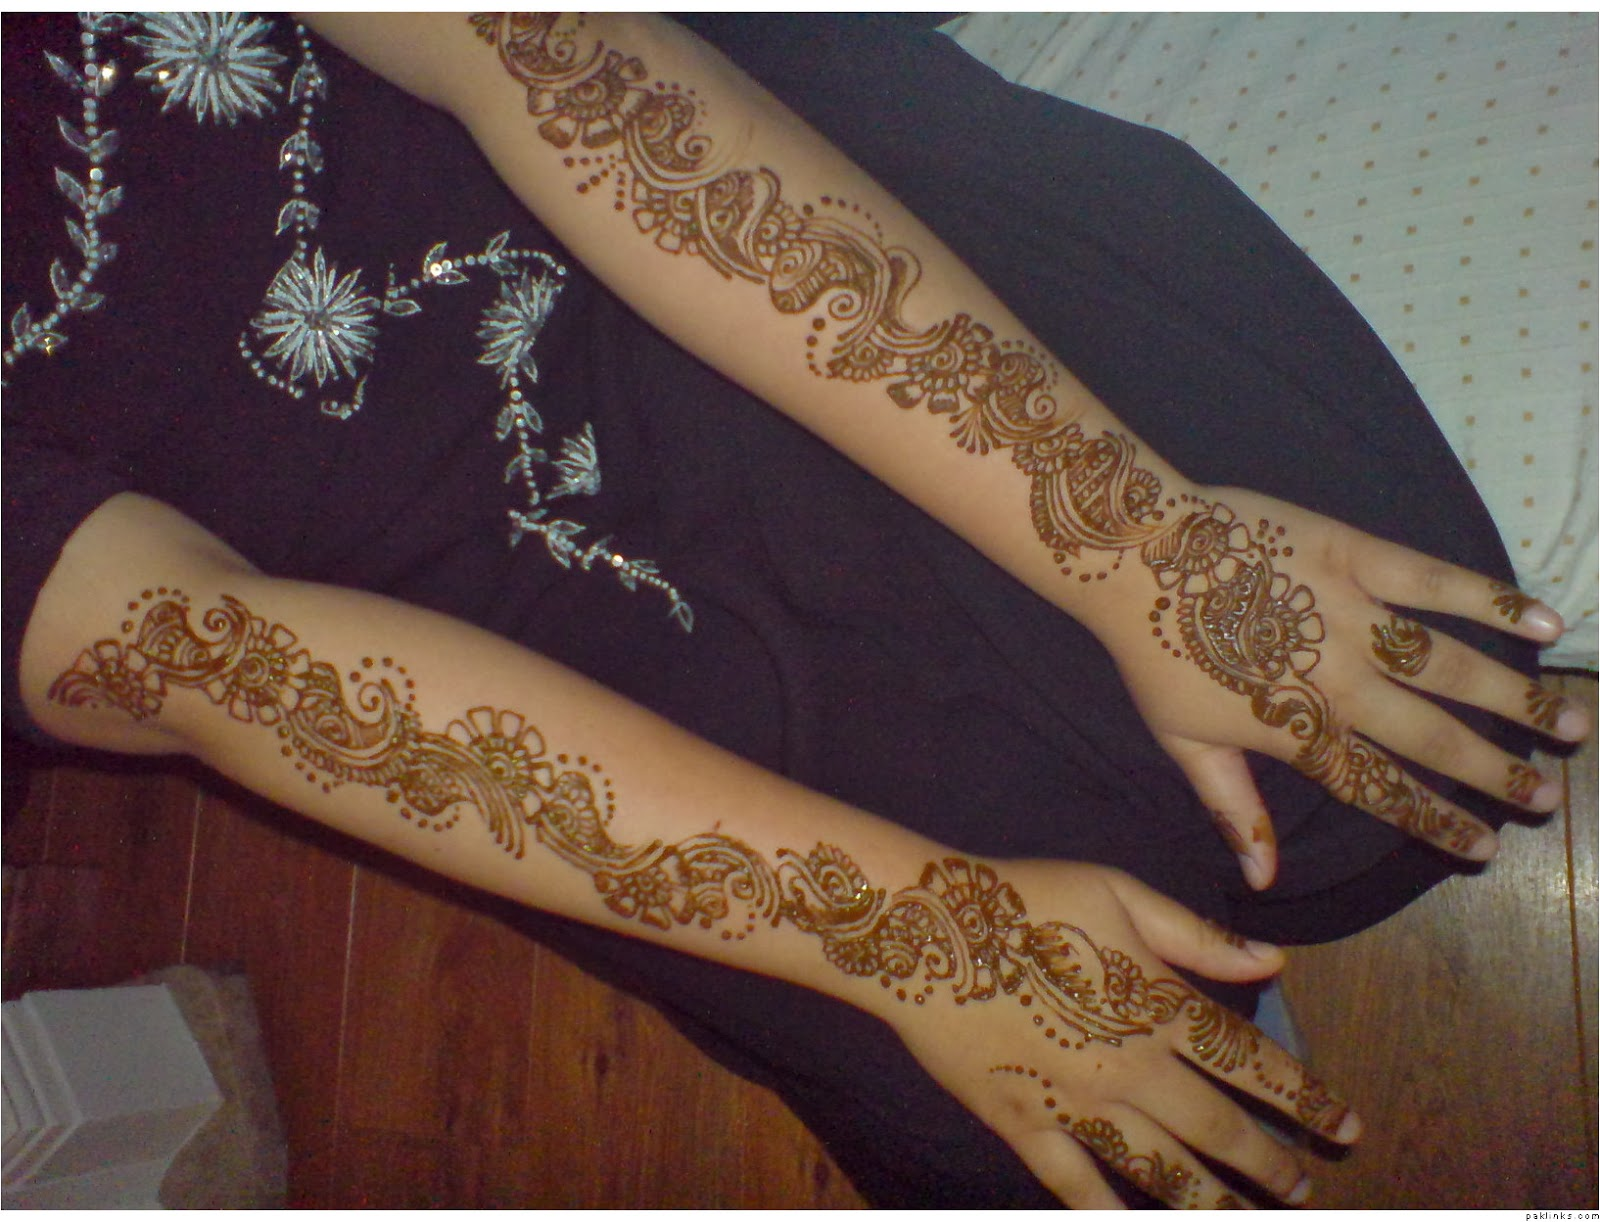 The best mehndi designs for hands livinghours - Original Mehndi Designs For Back Hands Arabic The Top 10 Picks